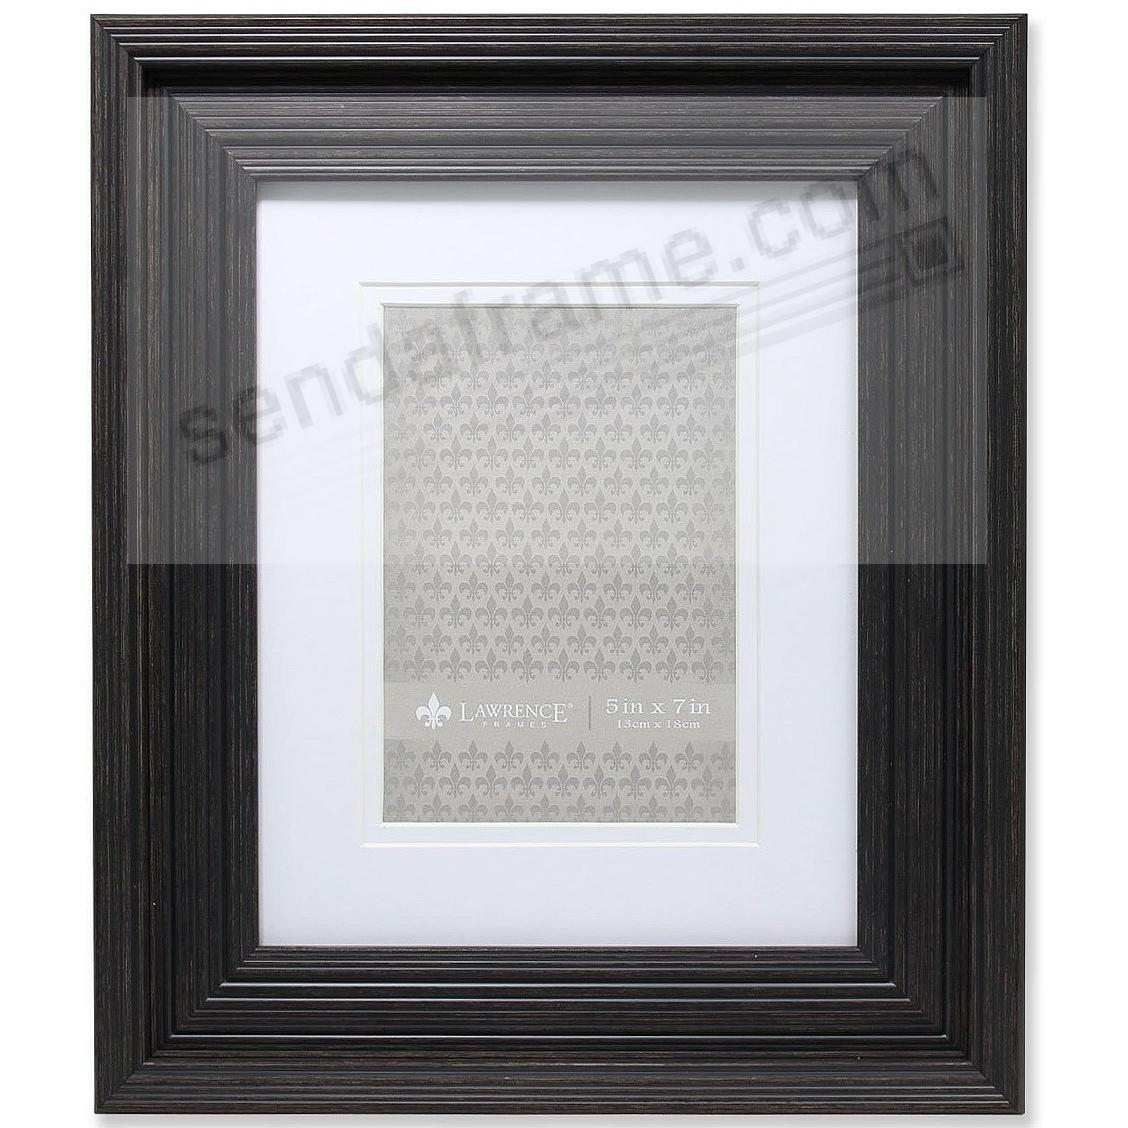 GROOVED Black Matted 8x10/5x7 frame by Lawrence® - Picture Frames ...